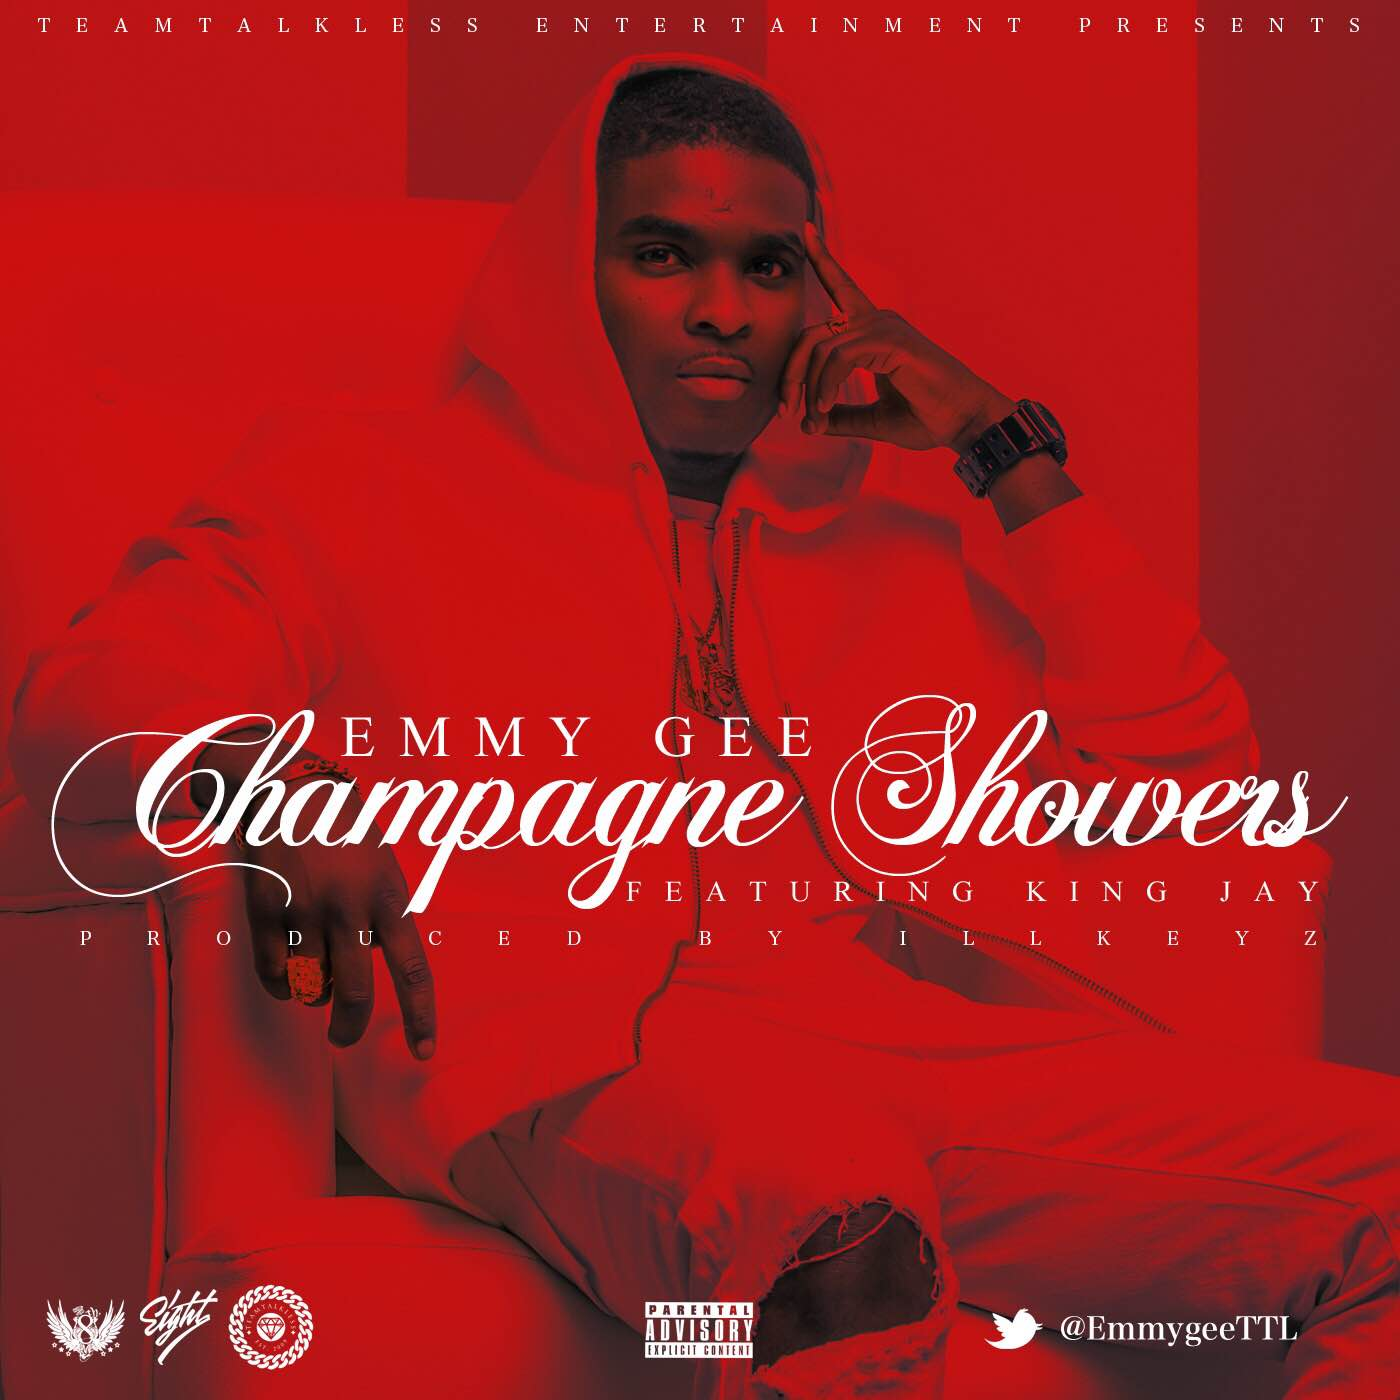 Emmy Gee - Champagne Showers